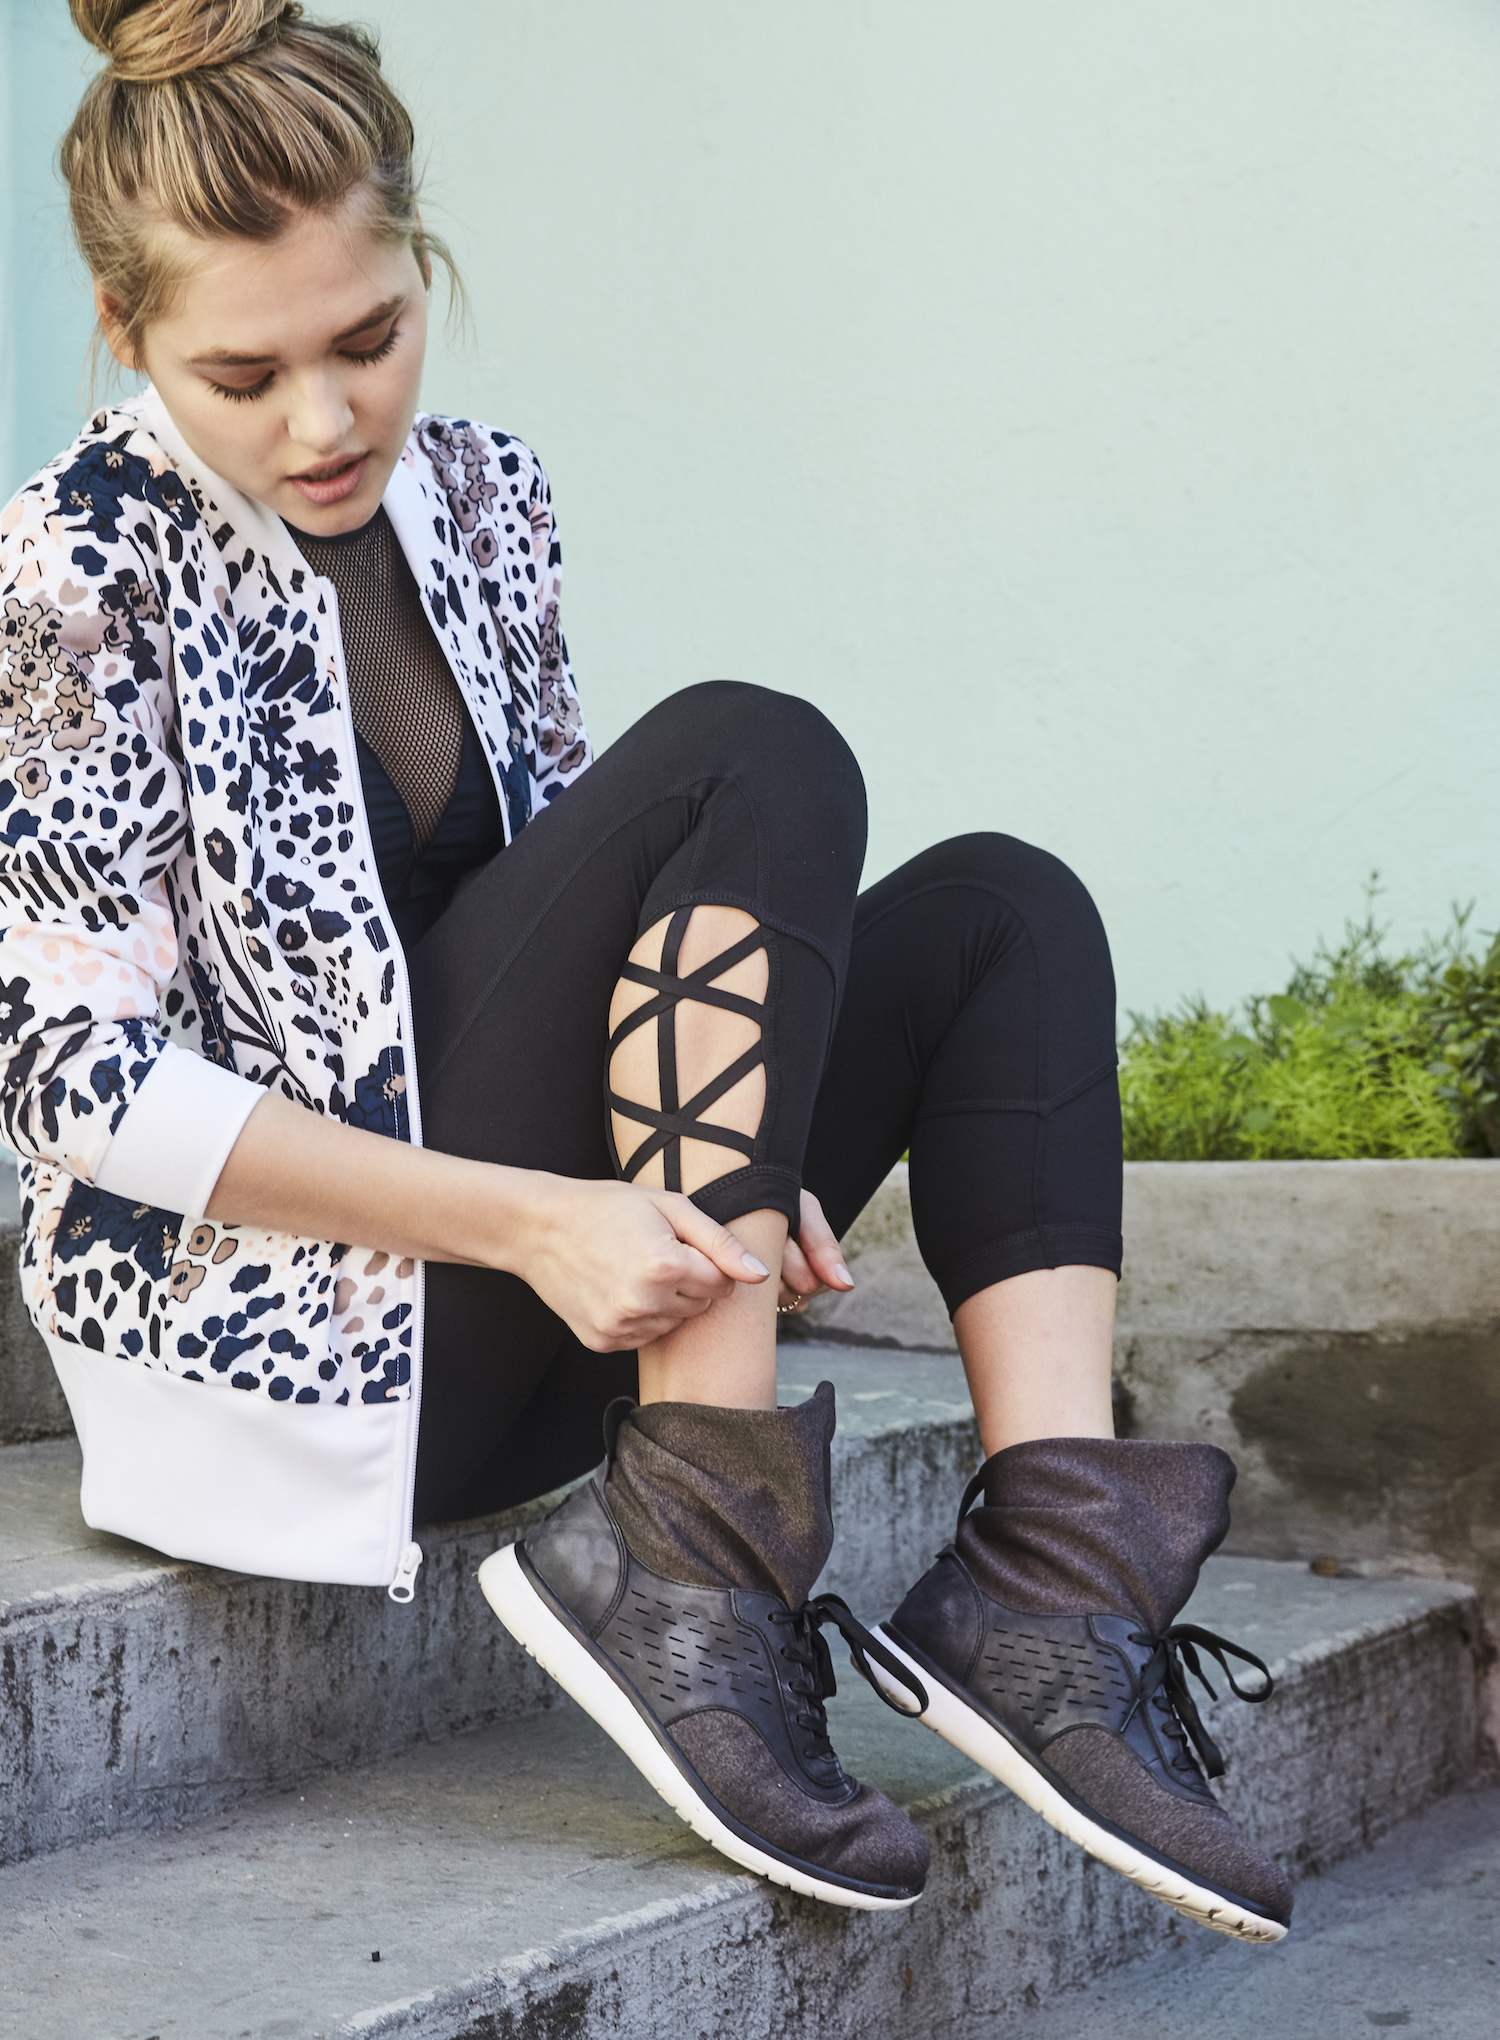 Here the Islay is worn with black leggings, a mesh sports bra, and floral print jacket.